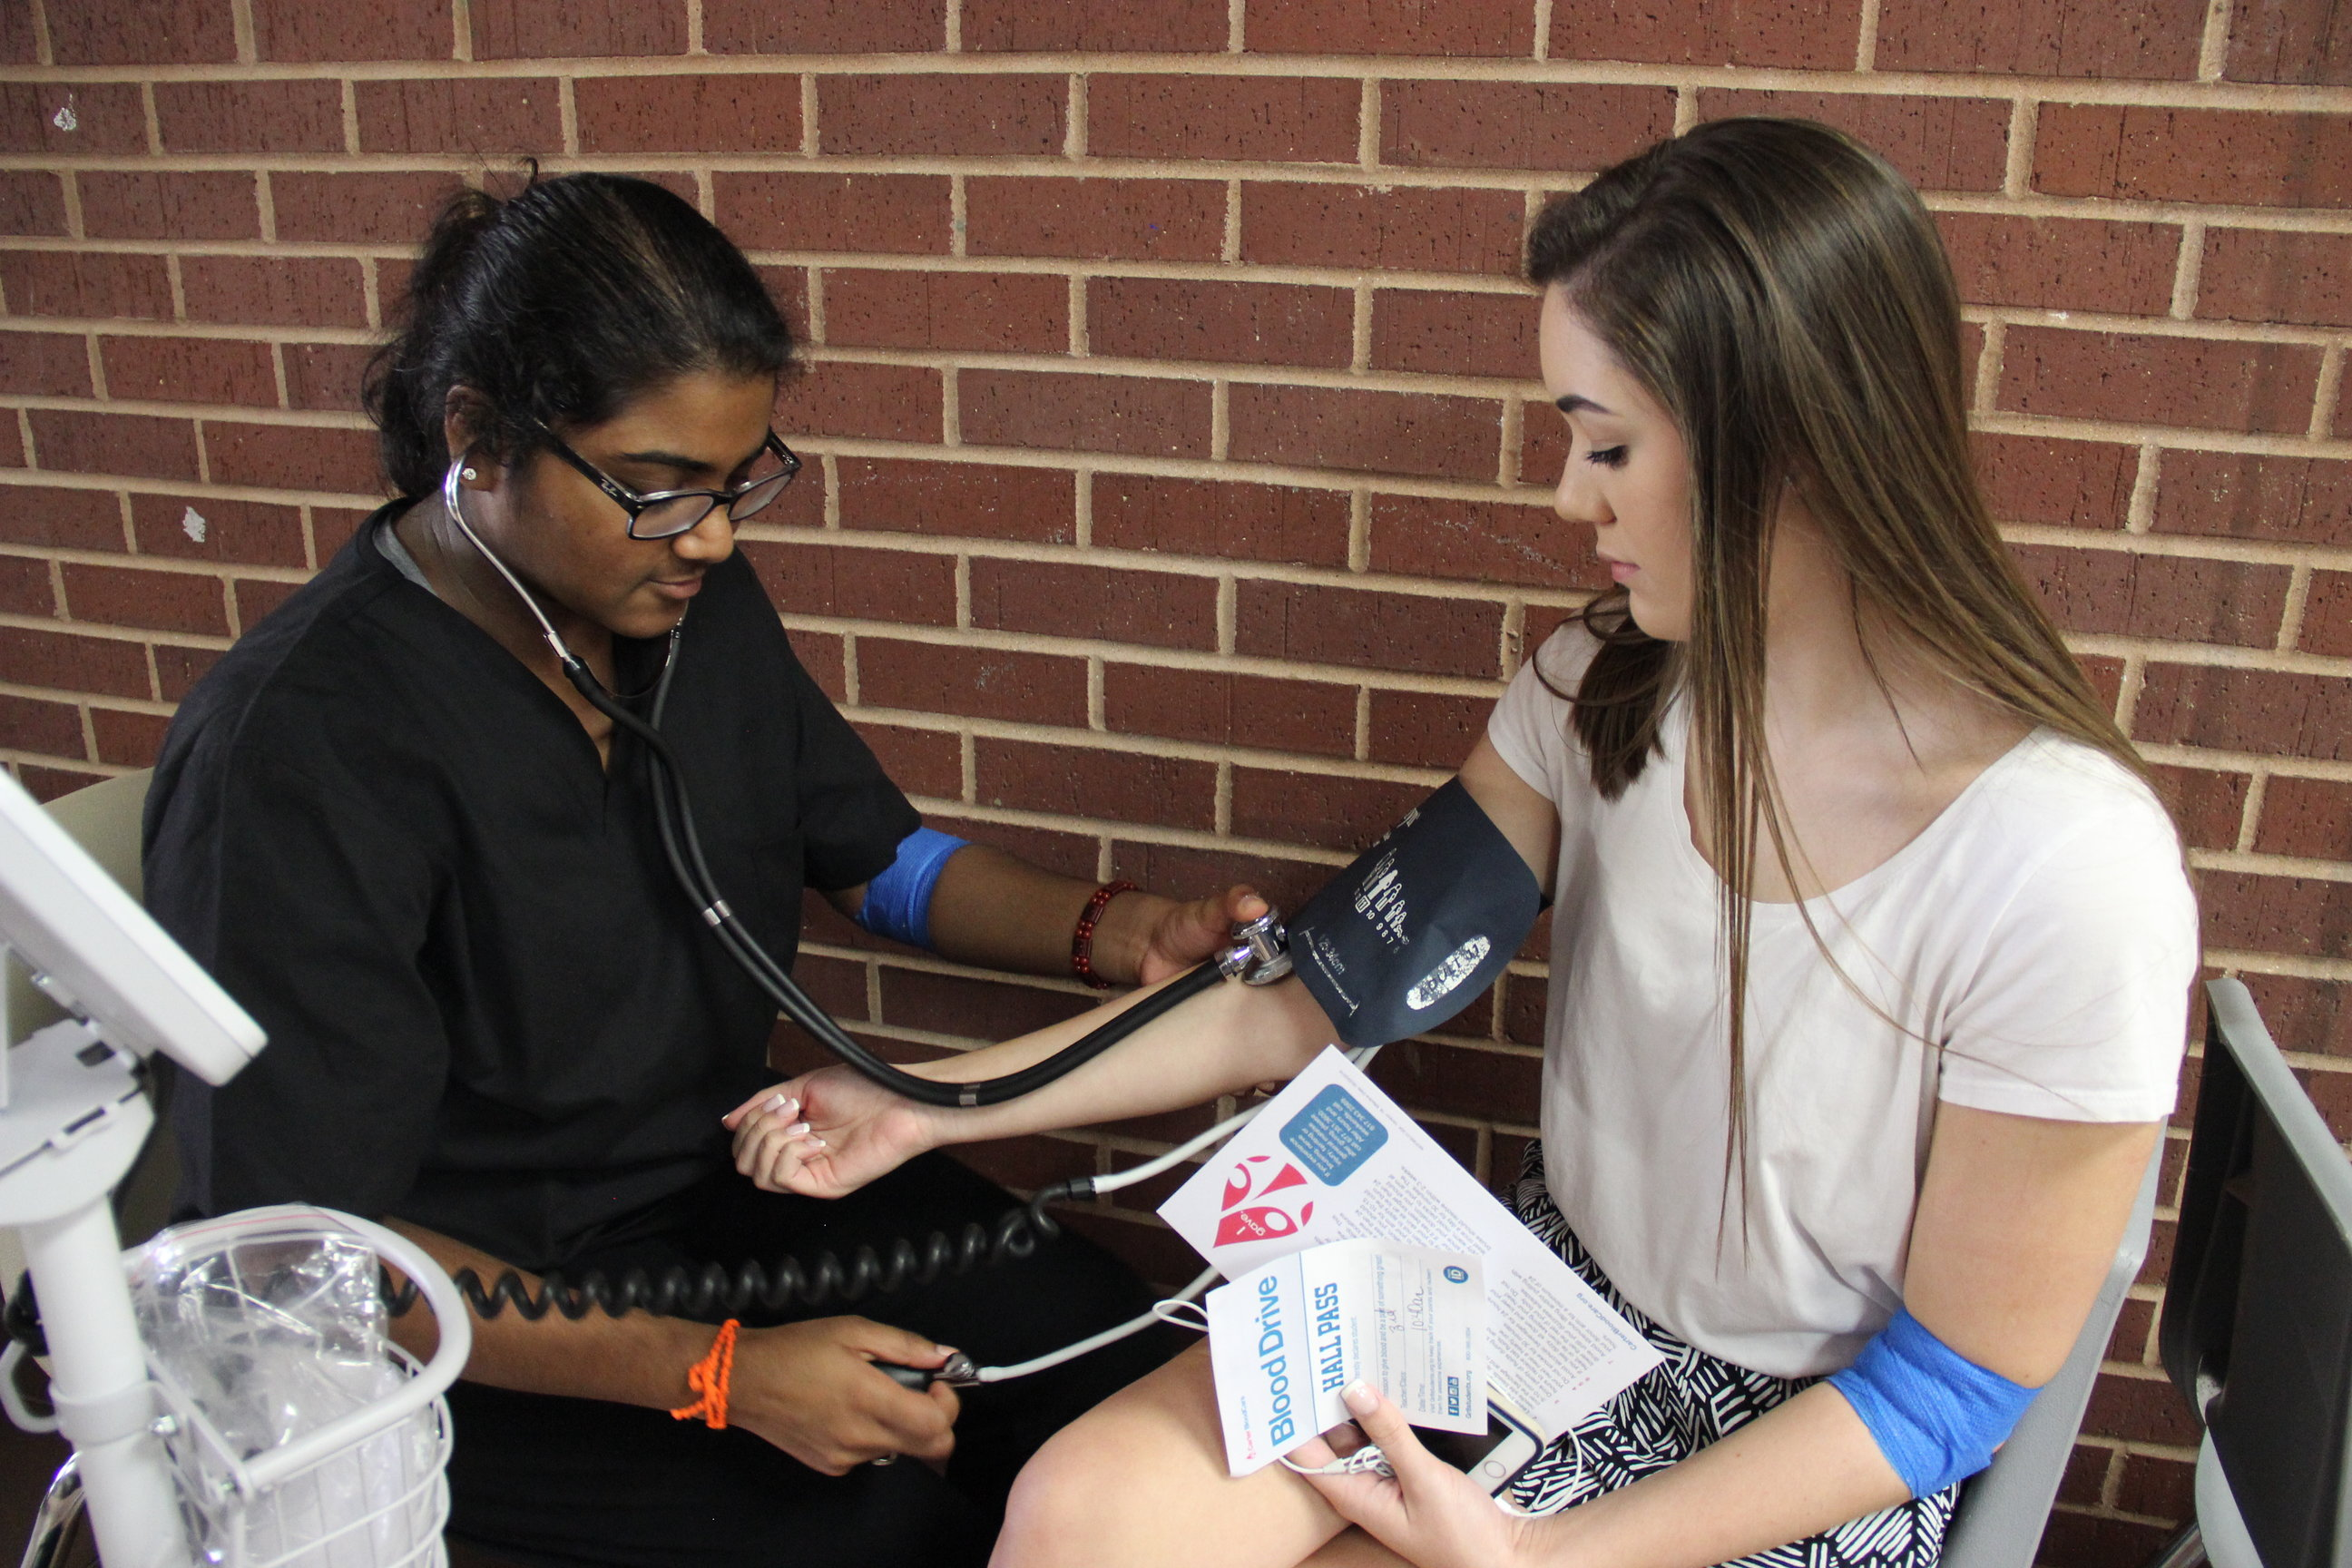 Coppell High School junior Navya Peddireddy checks senior Morgan Bryan's pulse after Bryan gave blood in the Coppell High School small gym on Tuesday. Students in the medical endorsement and Red Jackets helped out at the blood drive. Photo by Wren Lee